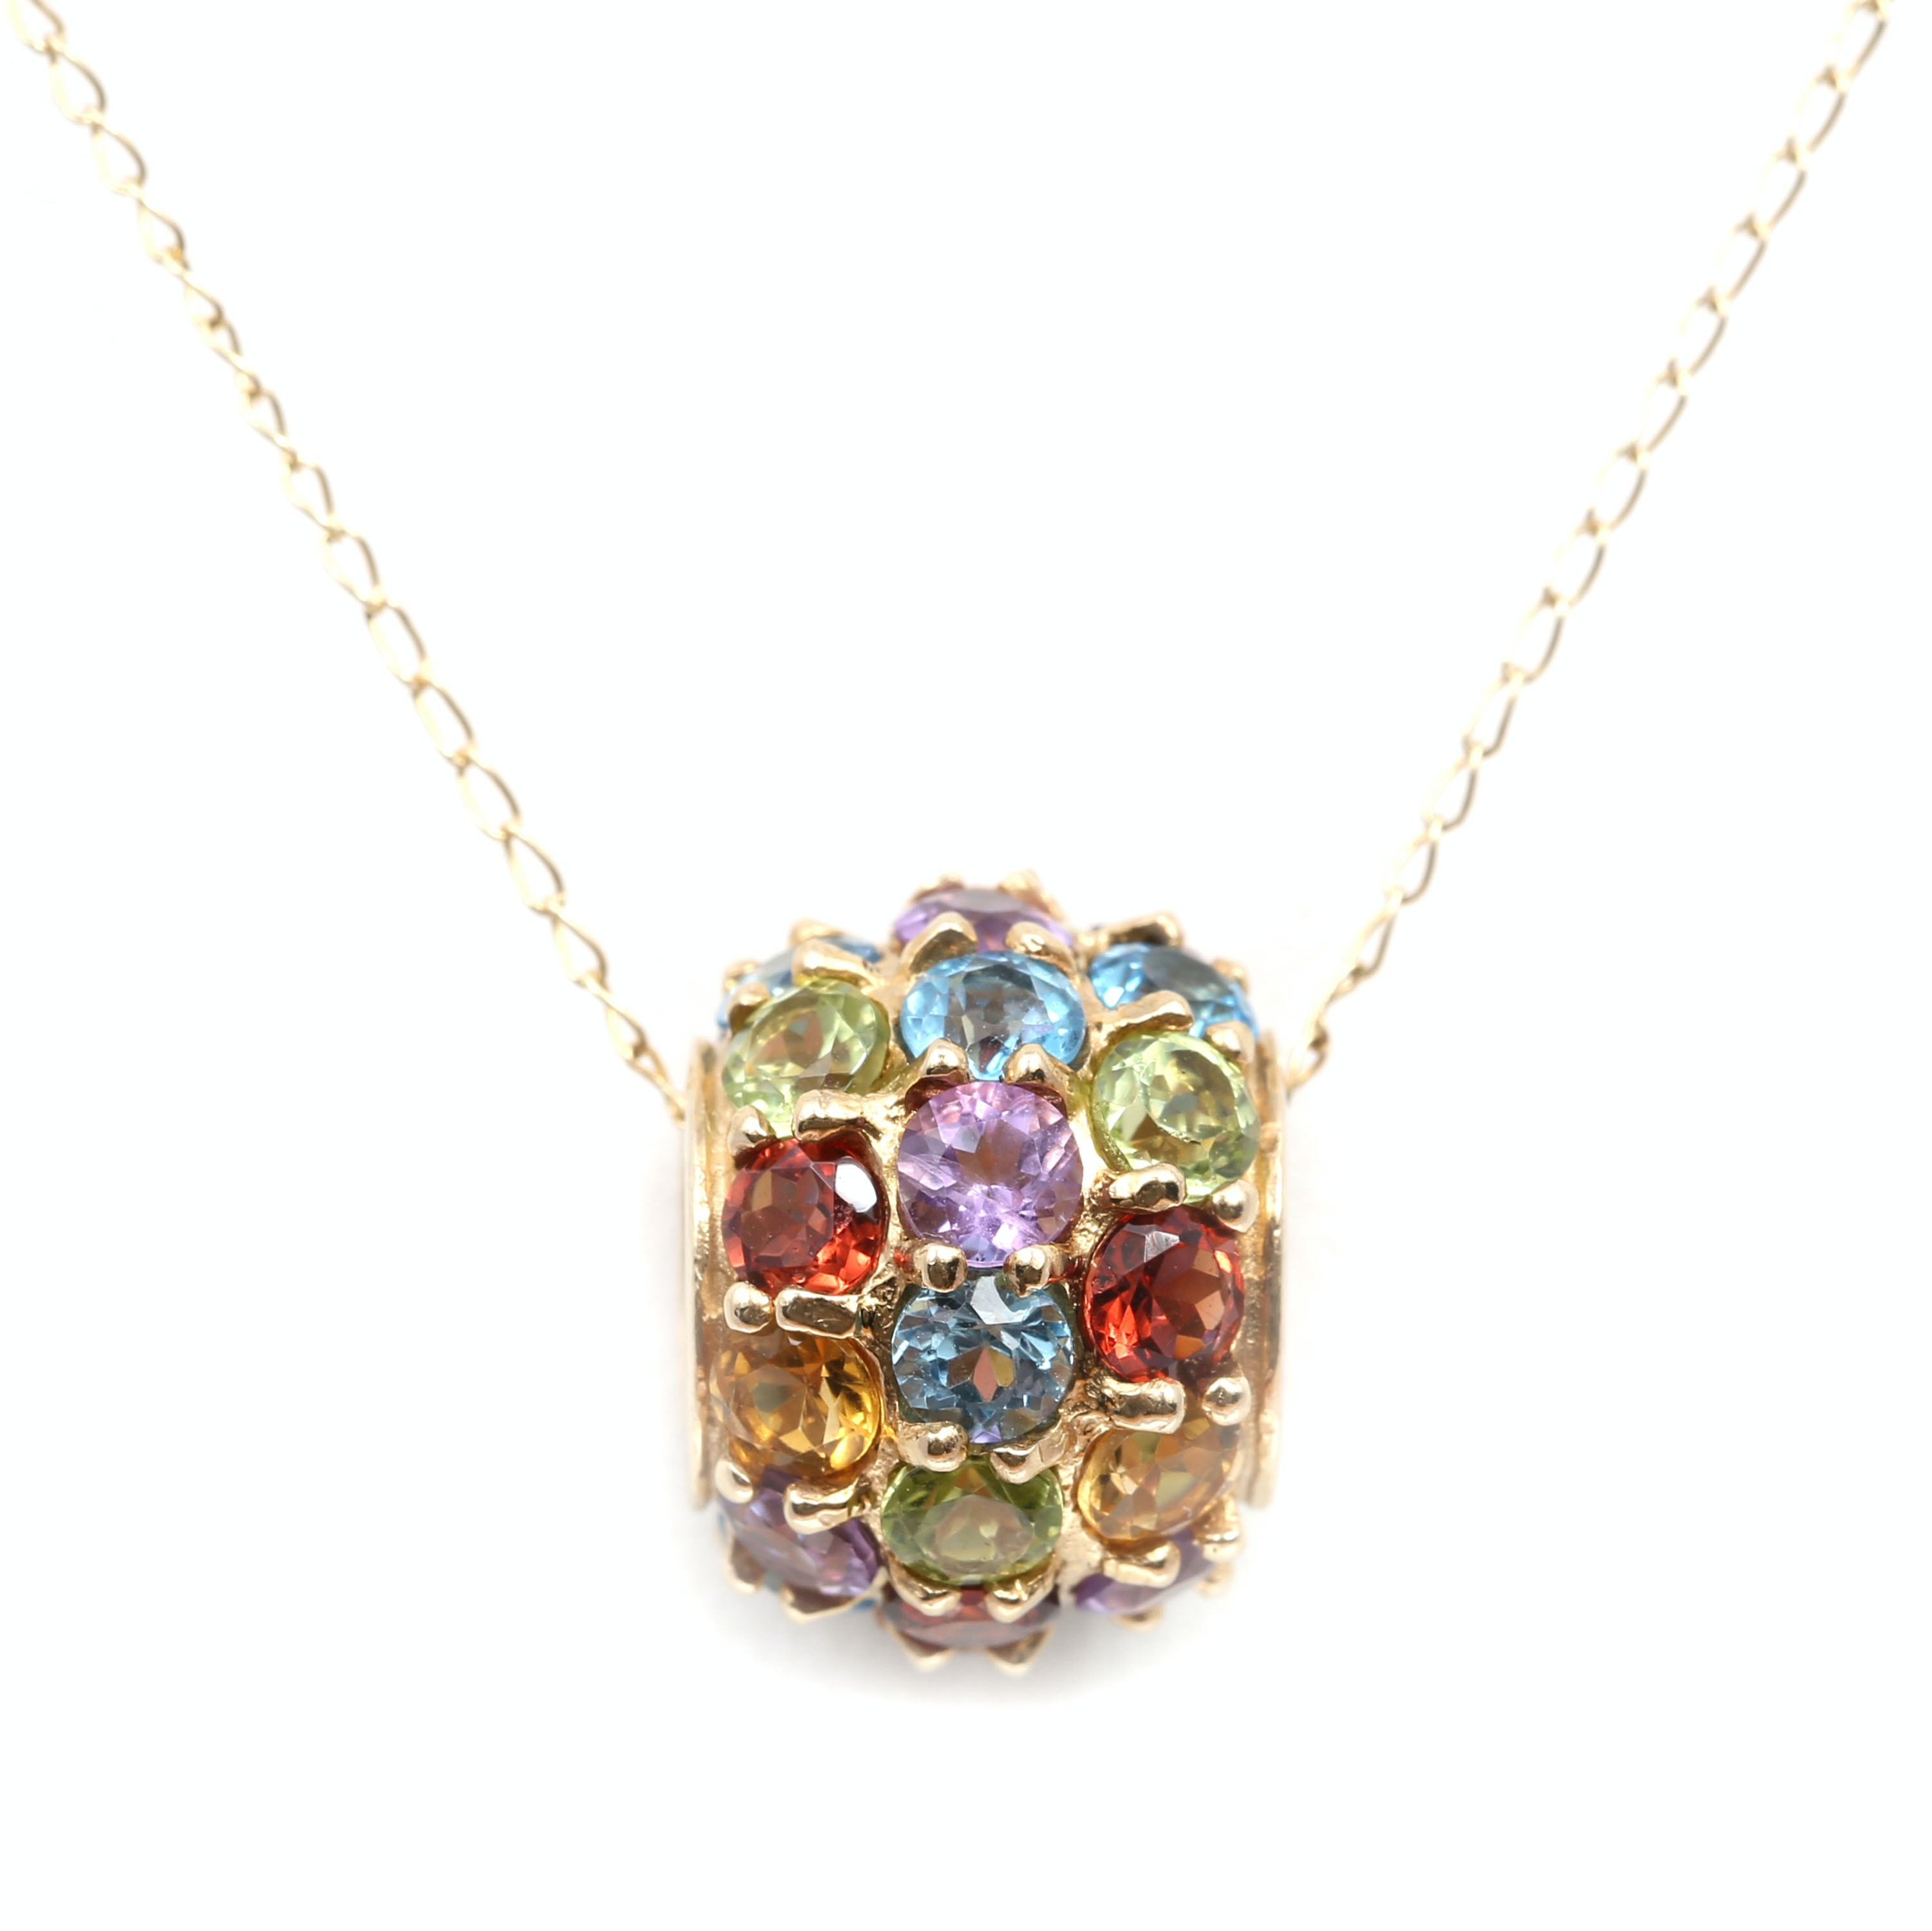 10K Yellow Gold Multi-Color Gemstone Pendant Necklace